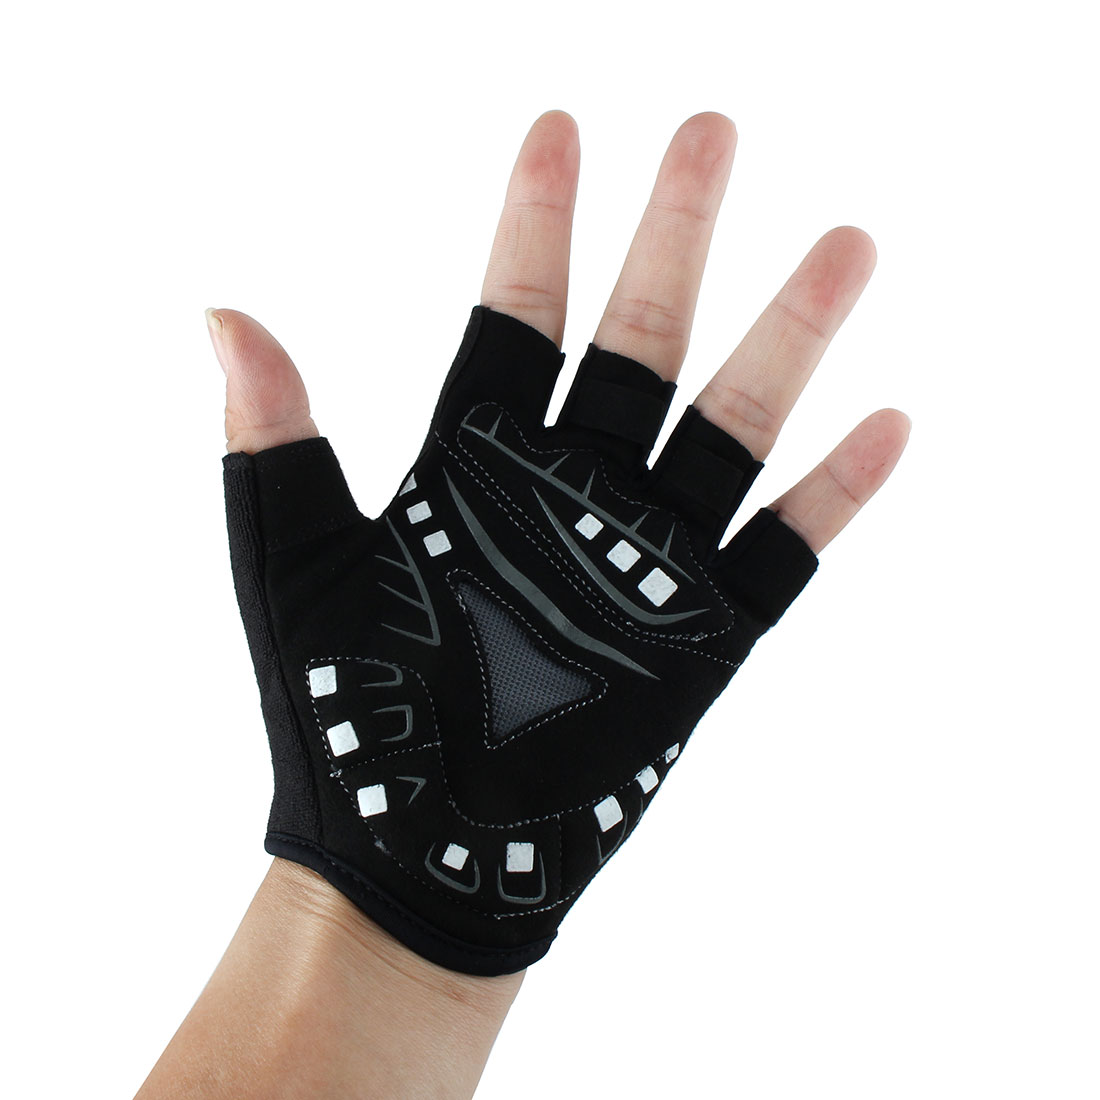 XINTOWN Authorized Cycling Outdoor Exercise Riding Half Finger Gloves #7 L Pair - image 1 of 4